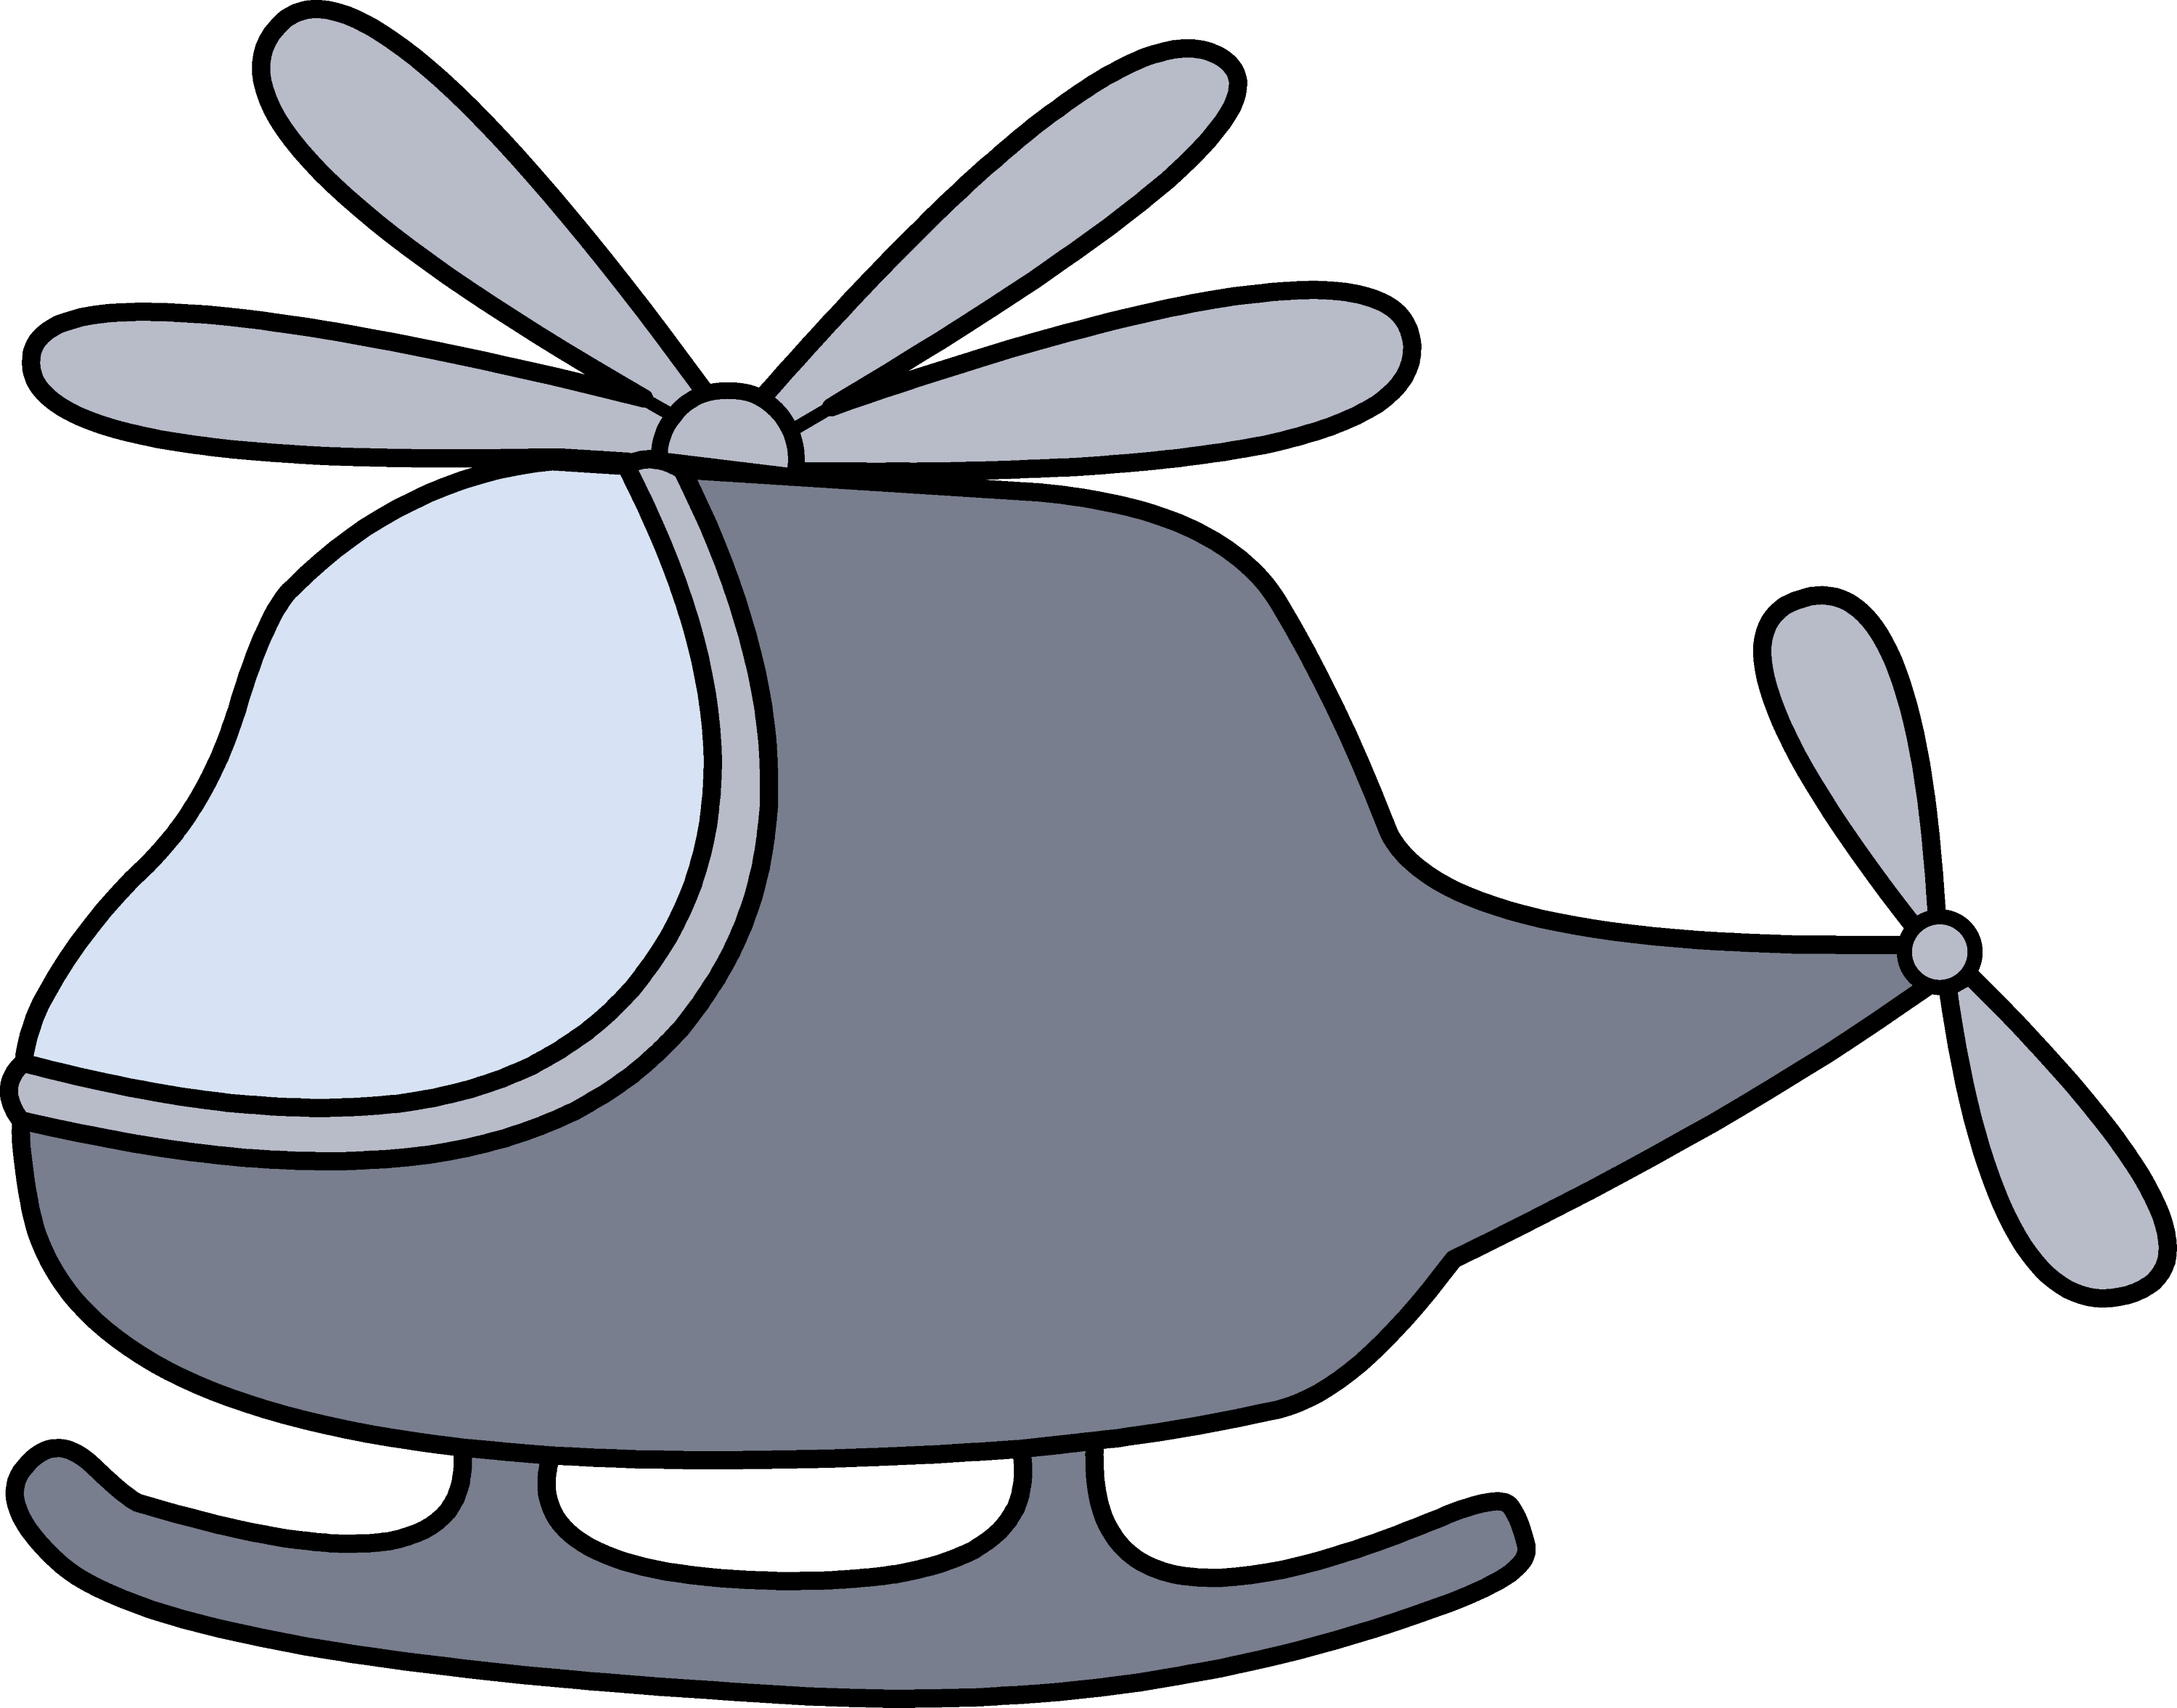 little gray helicopter clipart free clip art rh sweetclipart com clipart helicopter rescue clipart helicopters